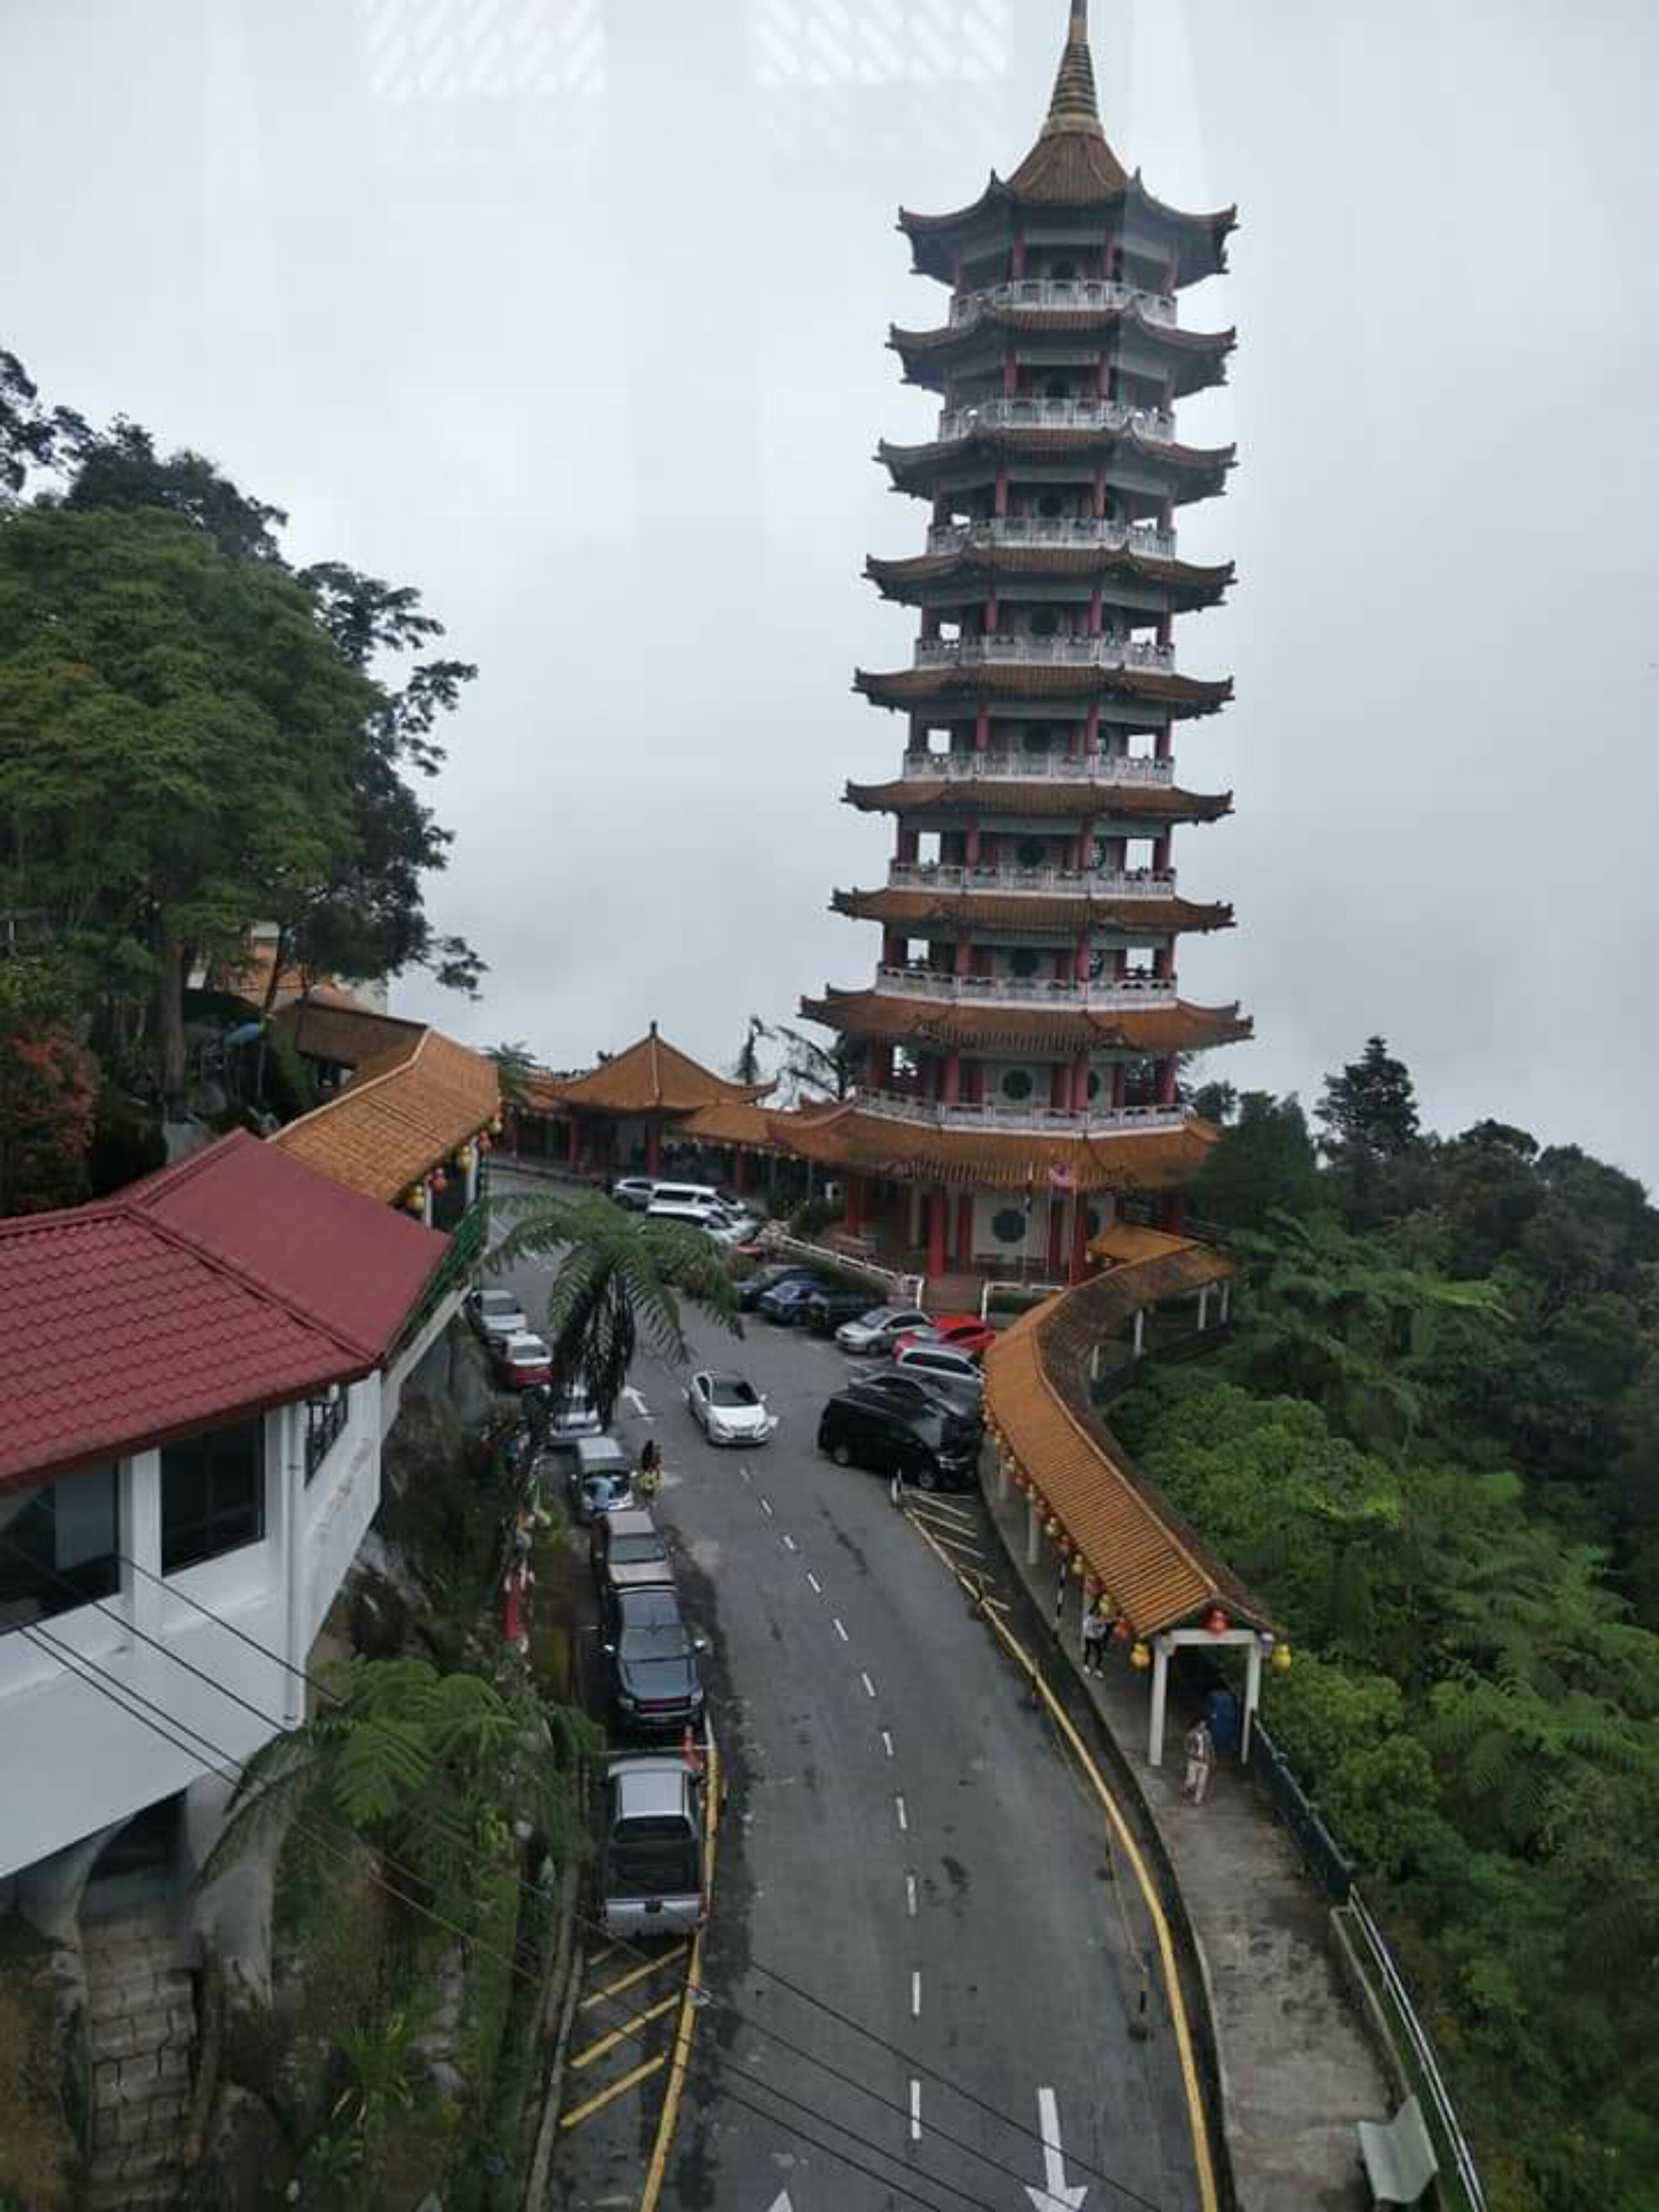 Free stock photo of All images, All visit place, Chinese chin sweet temple